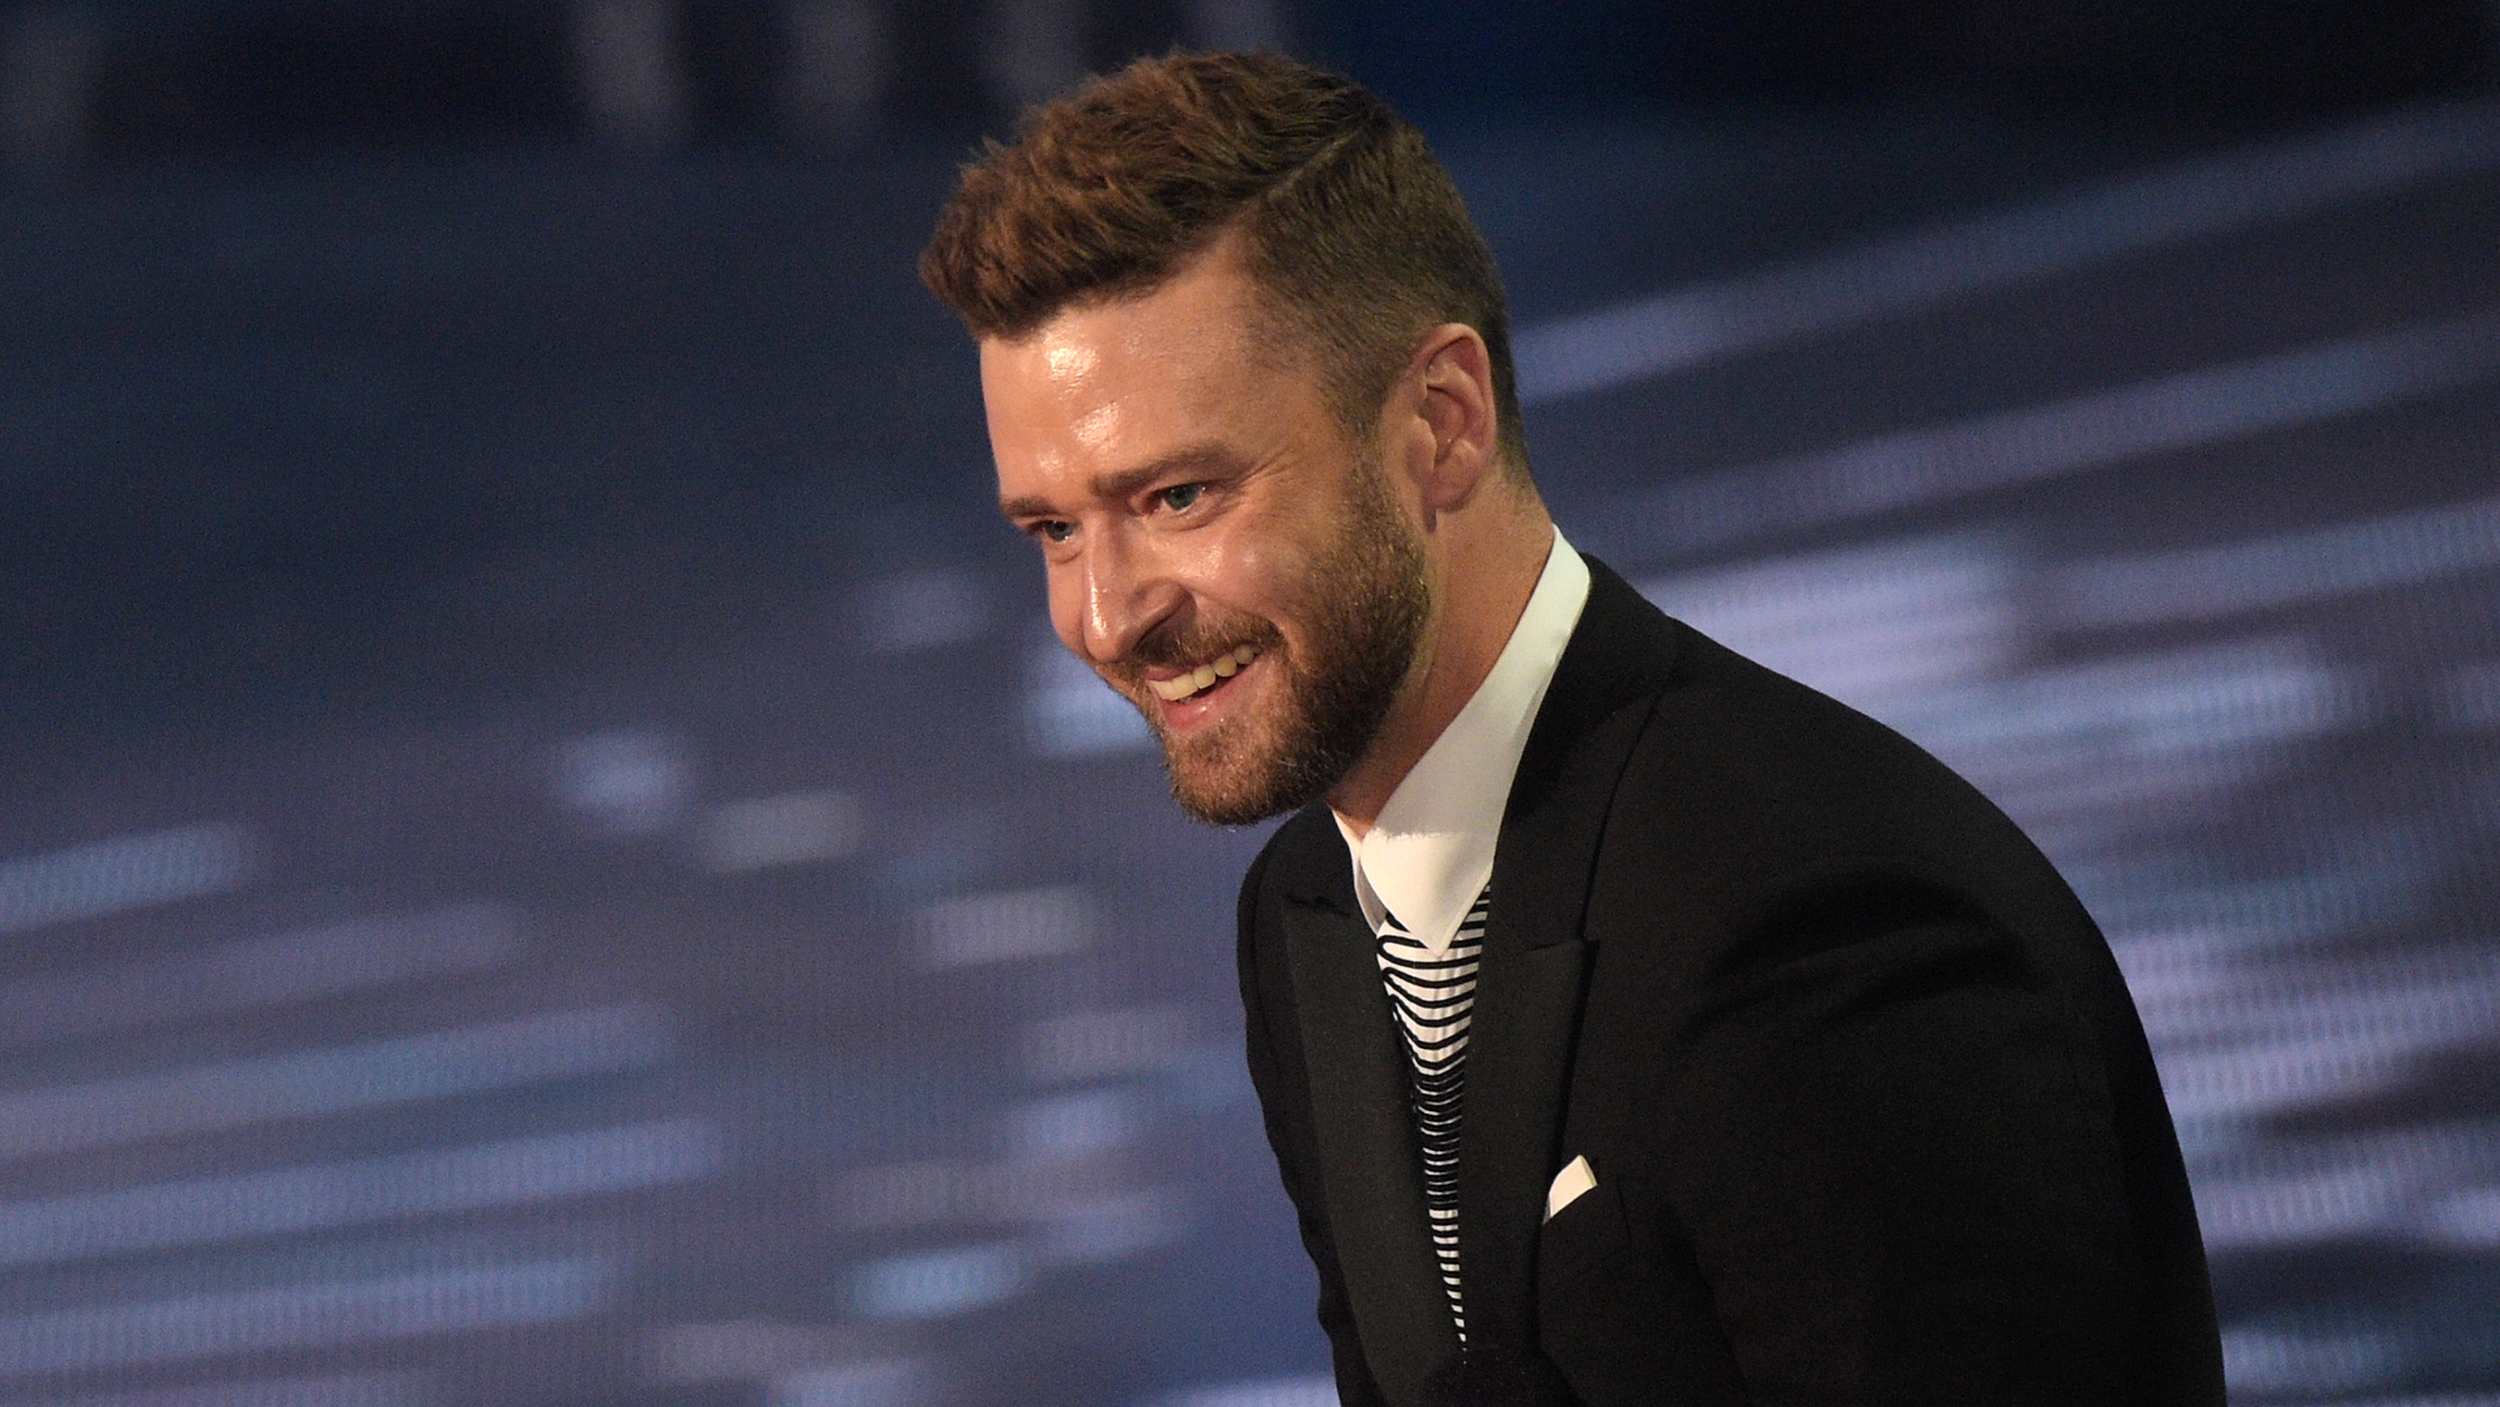 Justin Timberlake is headlining the 2018 Super Bowl halftime show (YES!)